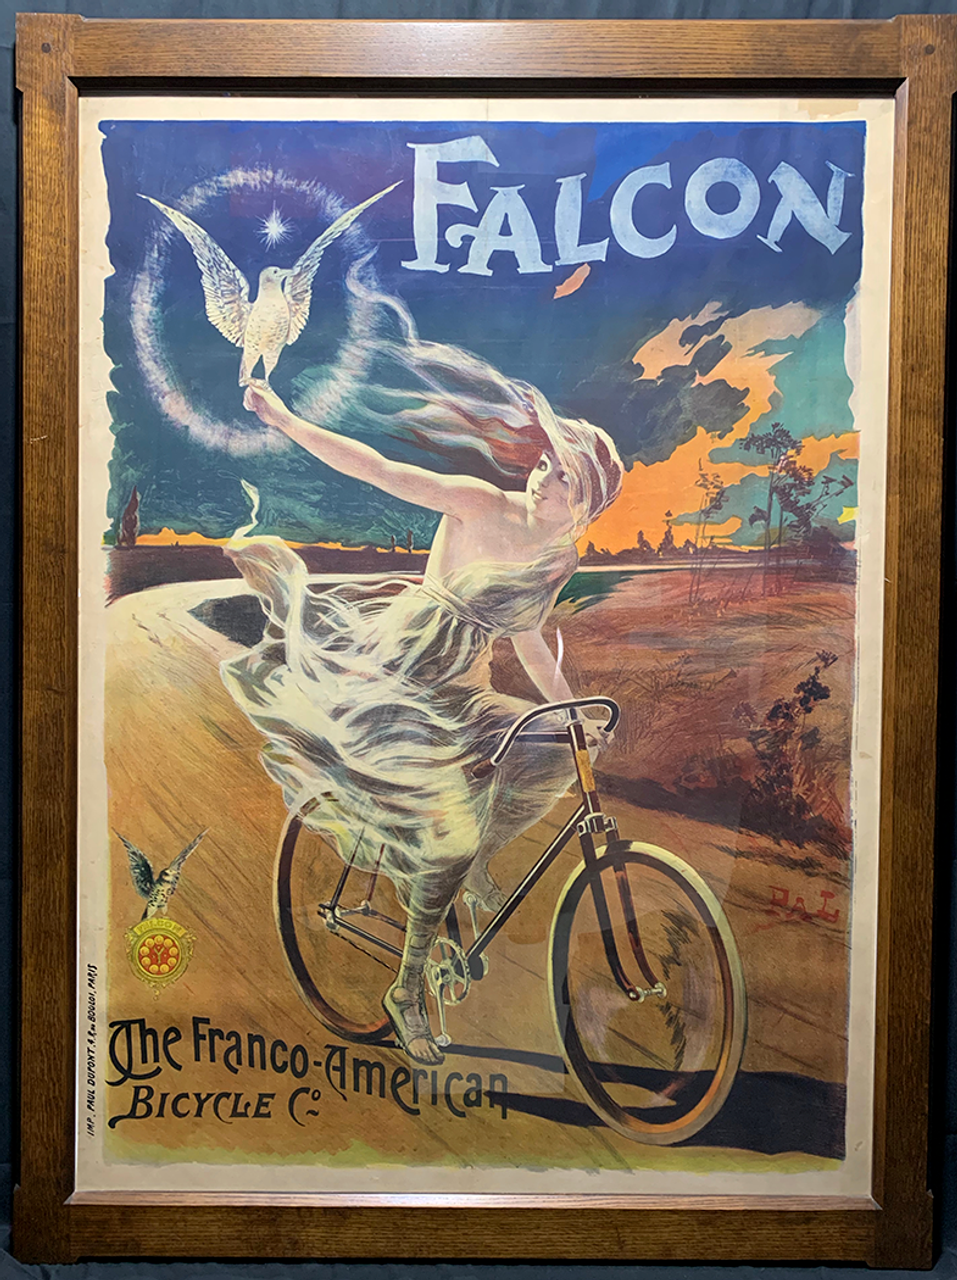 Falcon Original Vintage  Bicycle Poster by PAL